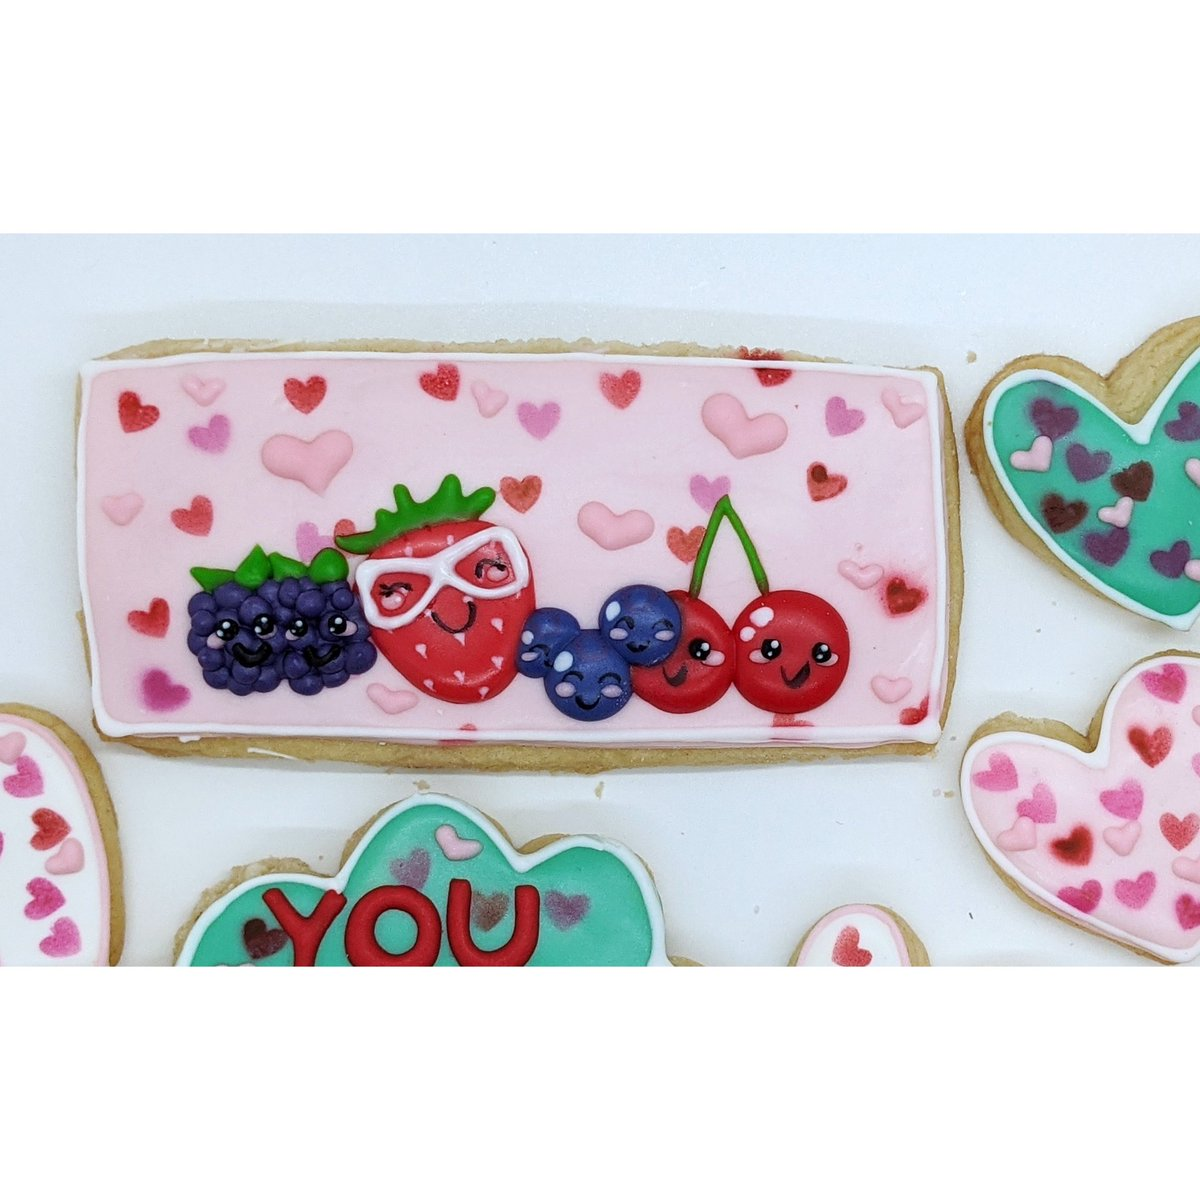 I'm WILD about you! 🍓🍒 Use code VDAY for a 10% discount! Code valid through 1/31 . #Cookies #WildBerries #WildAboutYou #ValentinesDay #LoveDay #Cookier #CookieArt #EdibleArt #CookieLove #nyc #CustomCookies #DecoratedCookies #SpreadLove #SugarSketch #CookieLove